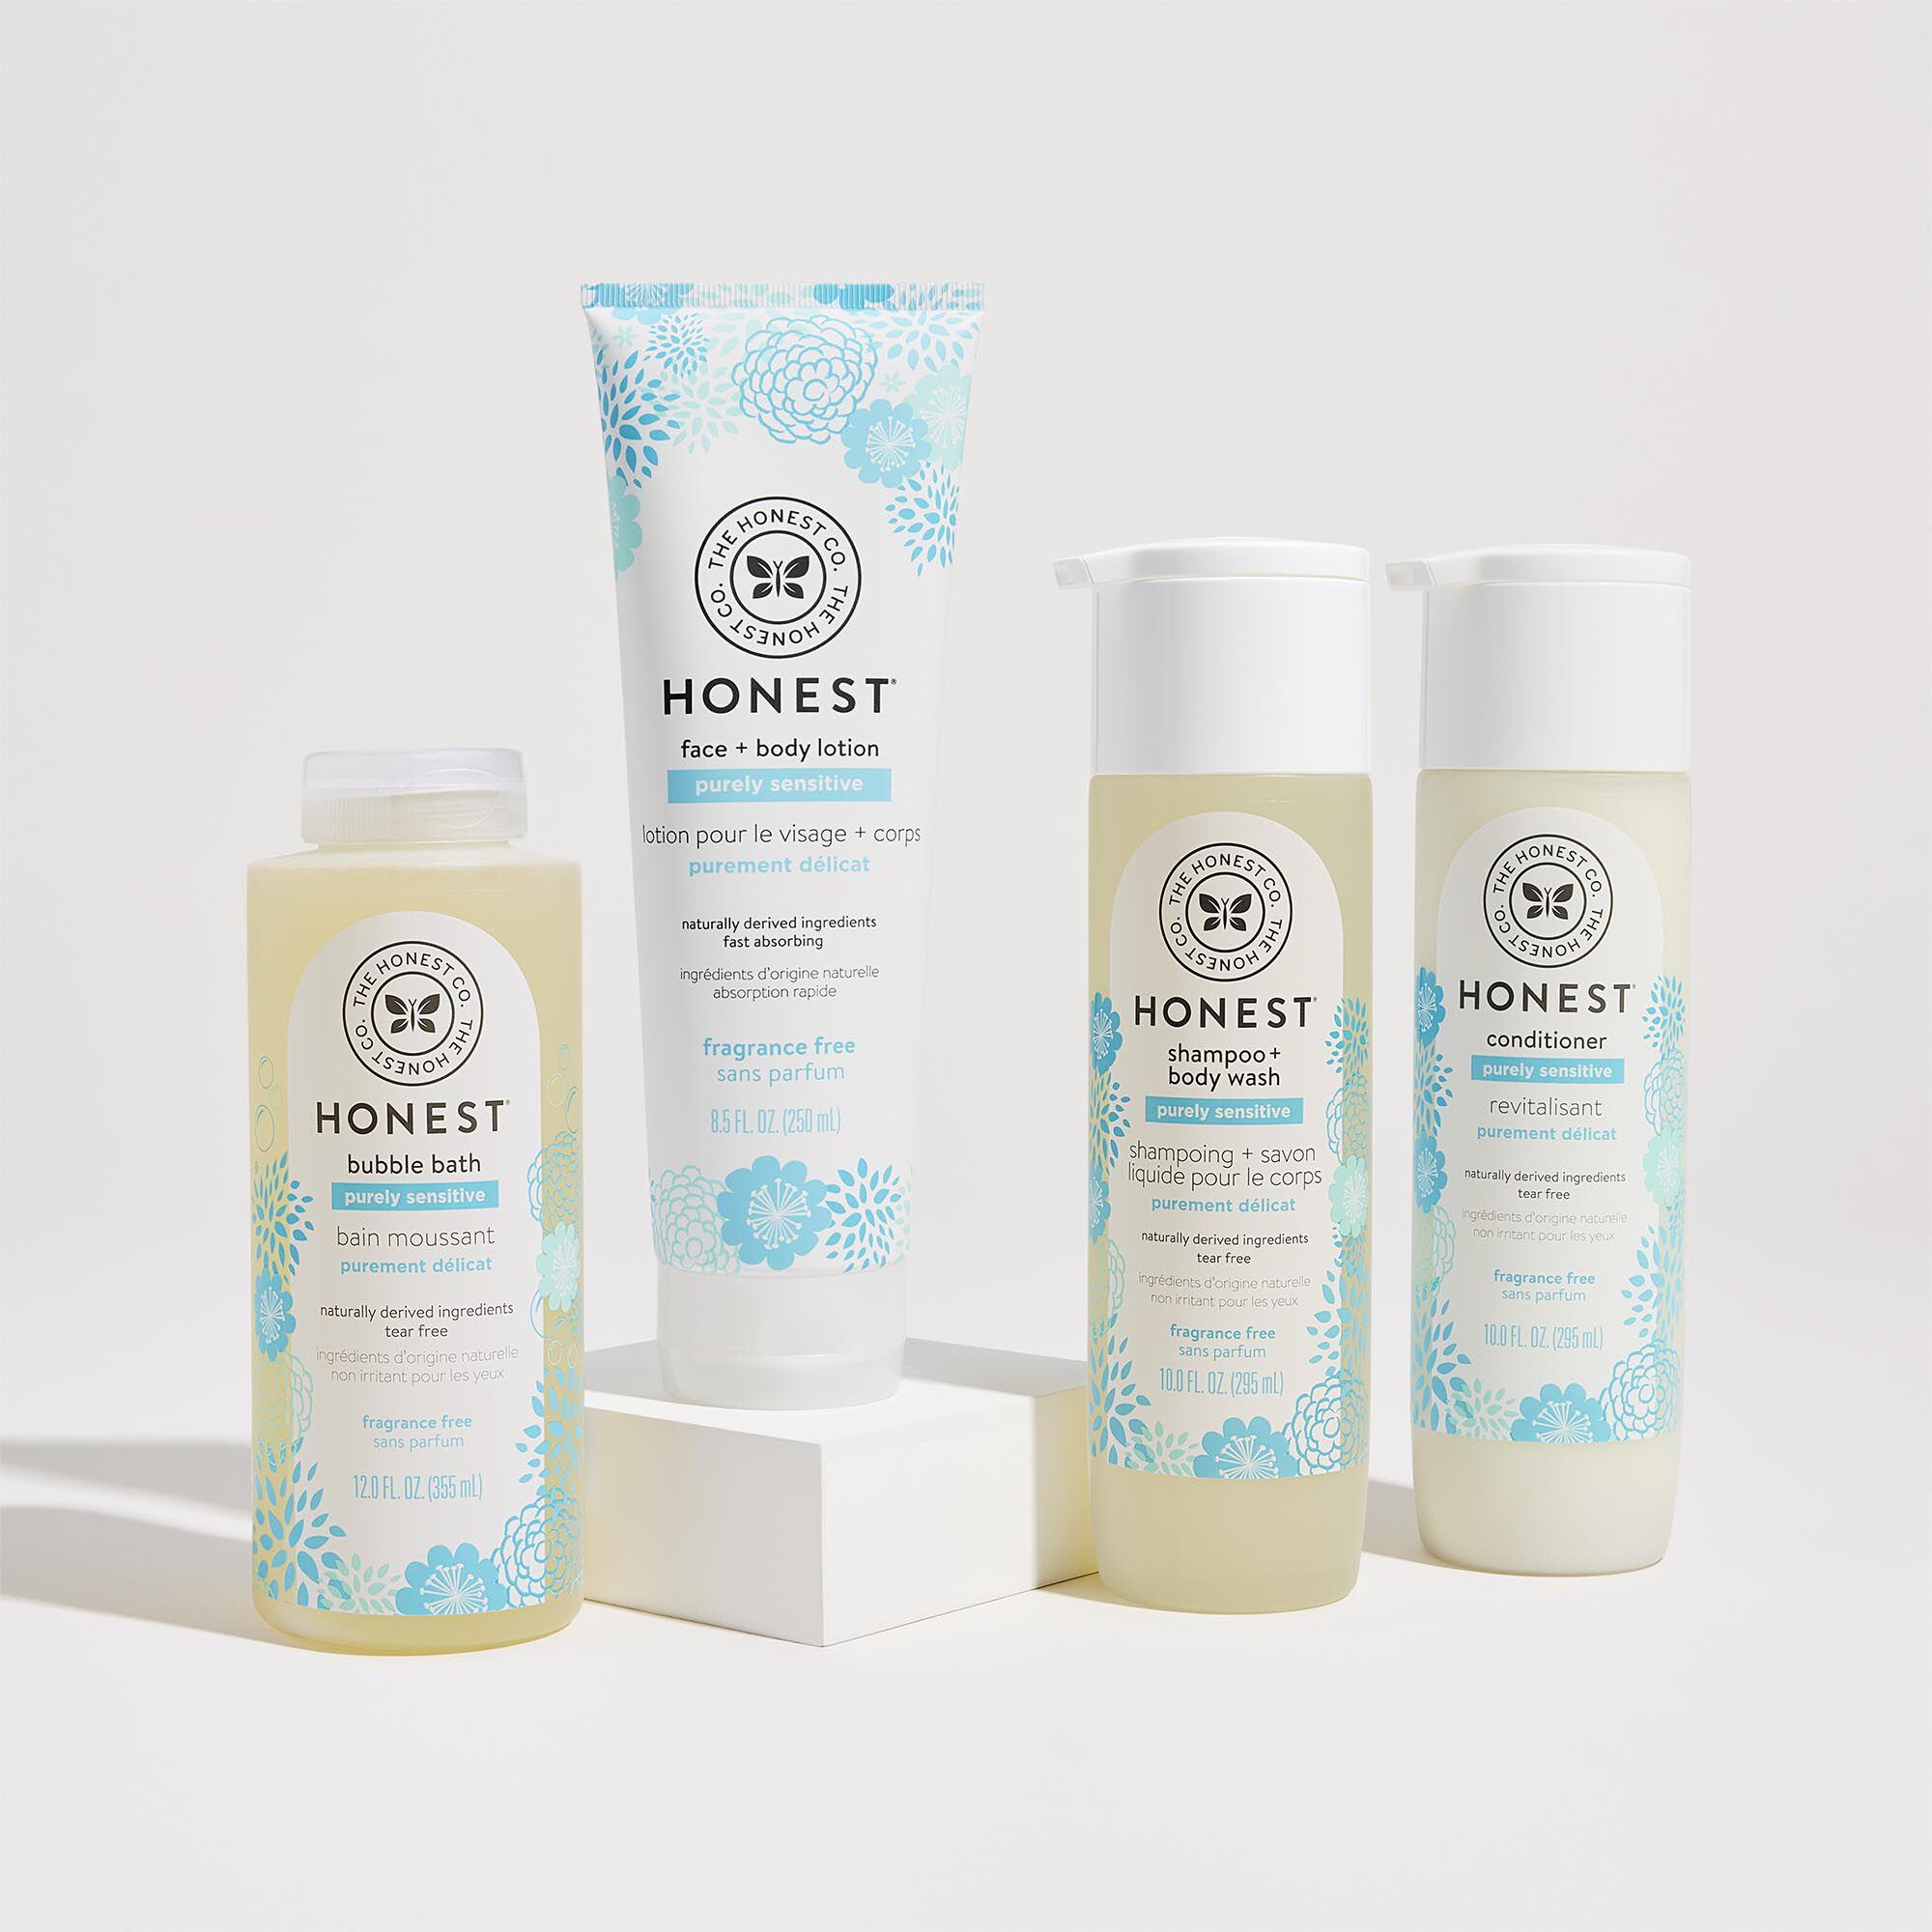 Purely Sensitive Bathtime Routine Kit